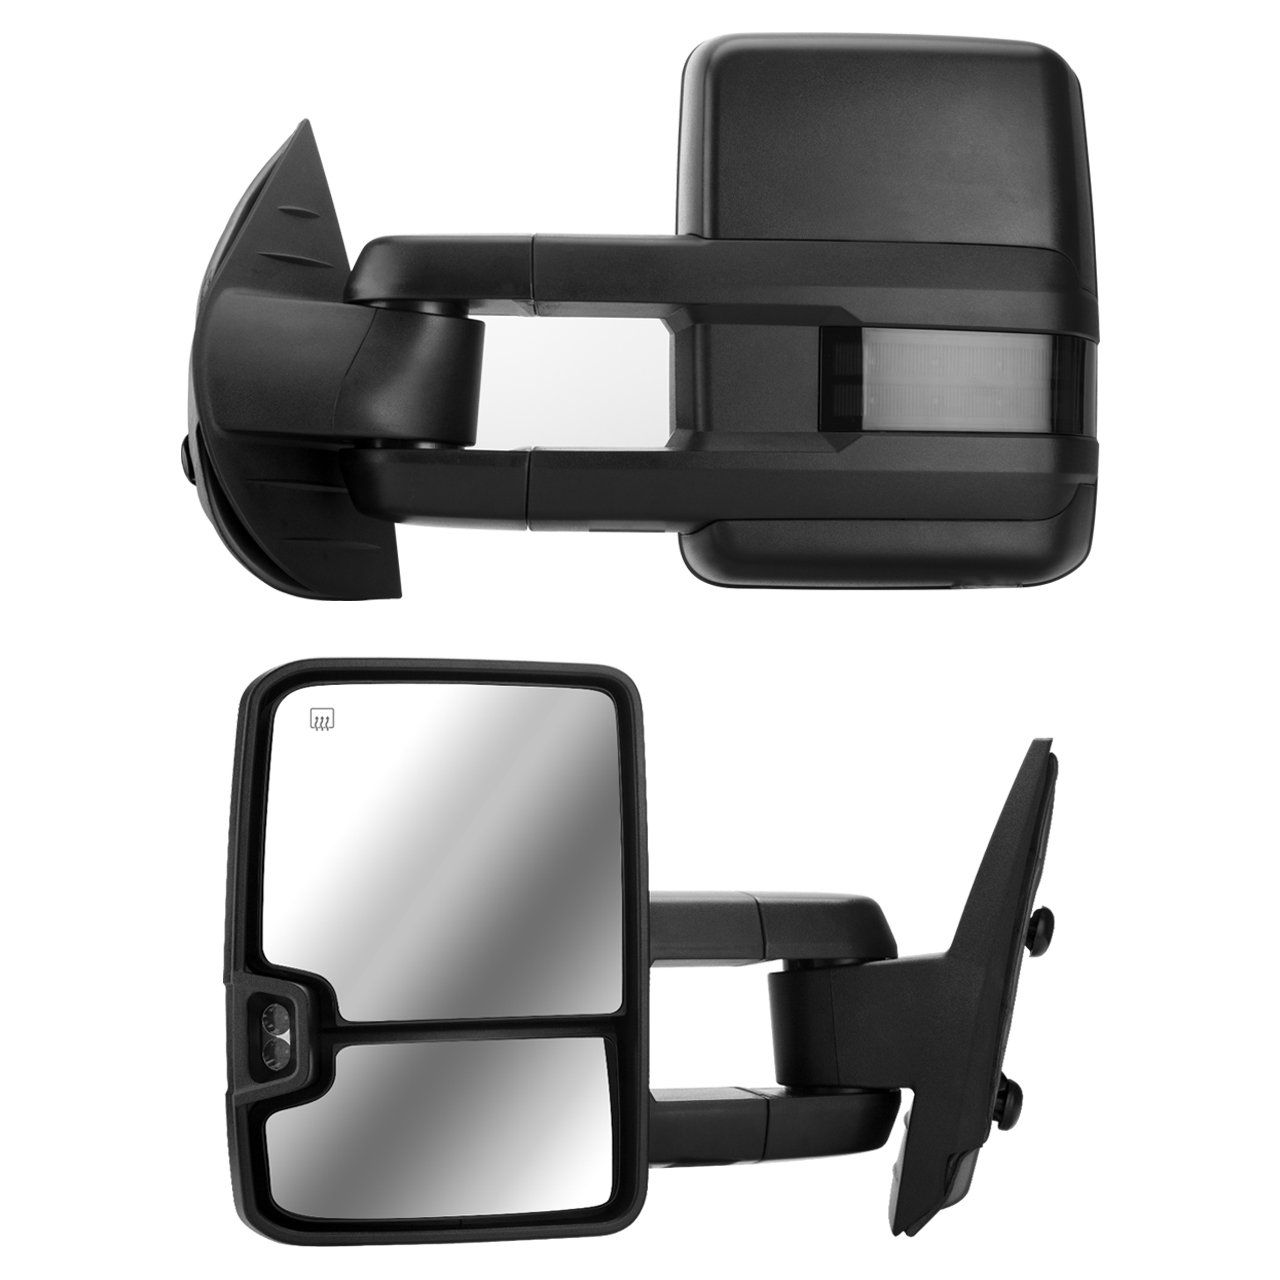 DEDC Tow Mirrors Pair Fit For Chevy Silverado 1500 2500 3500 GMC ...